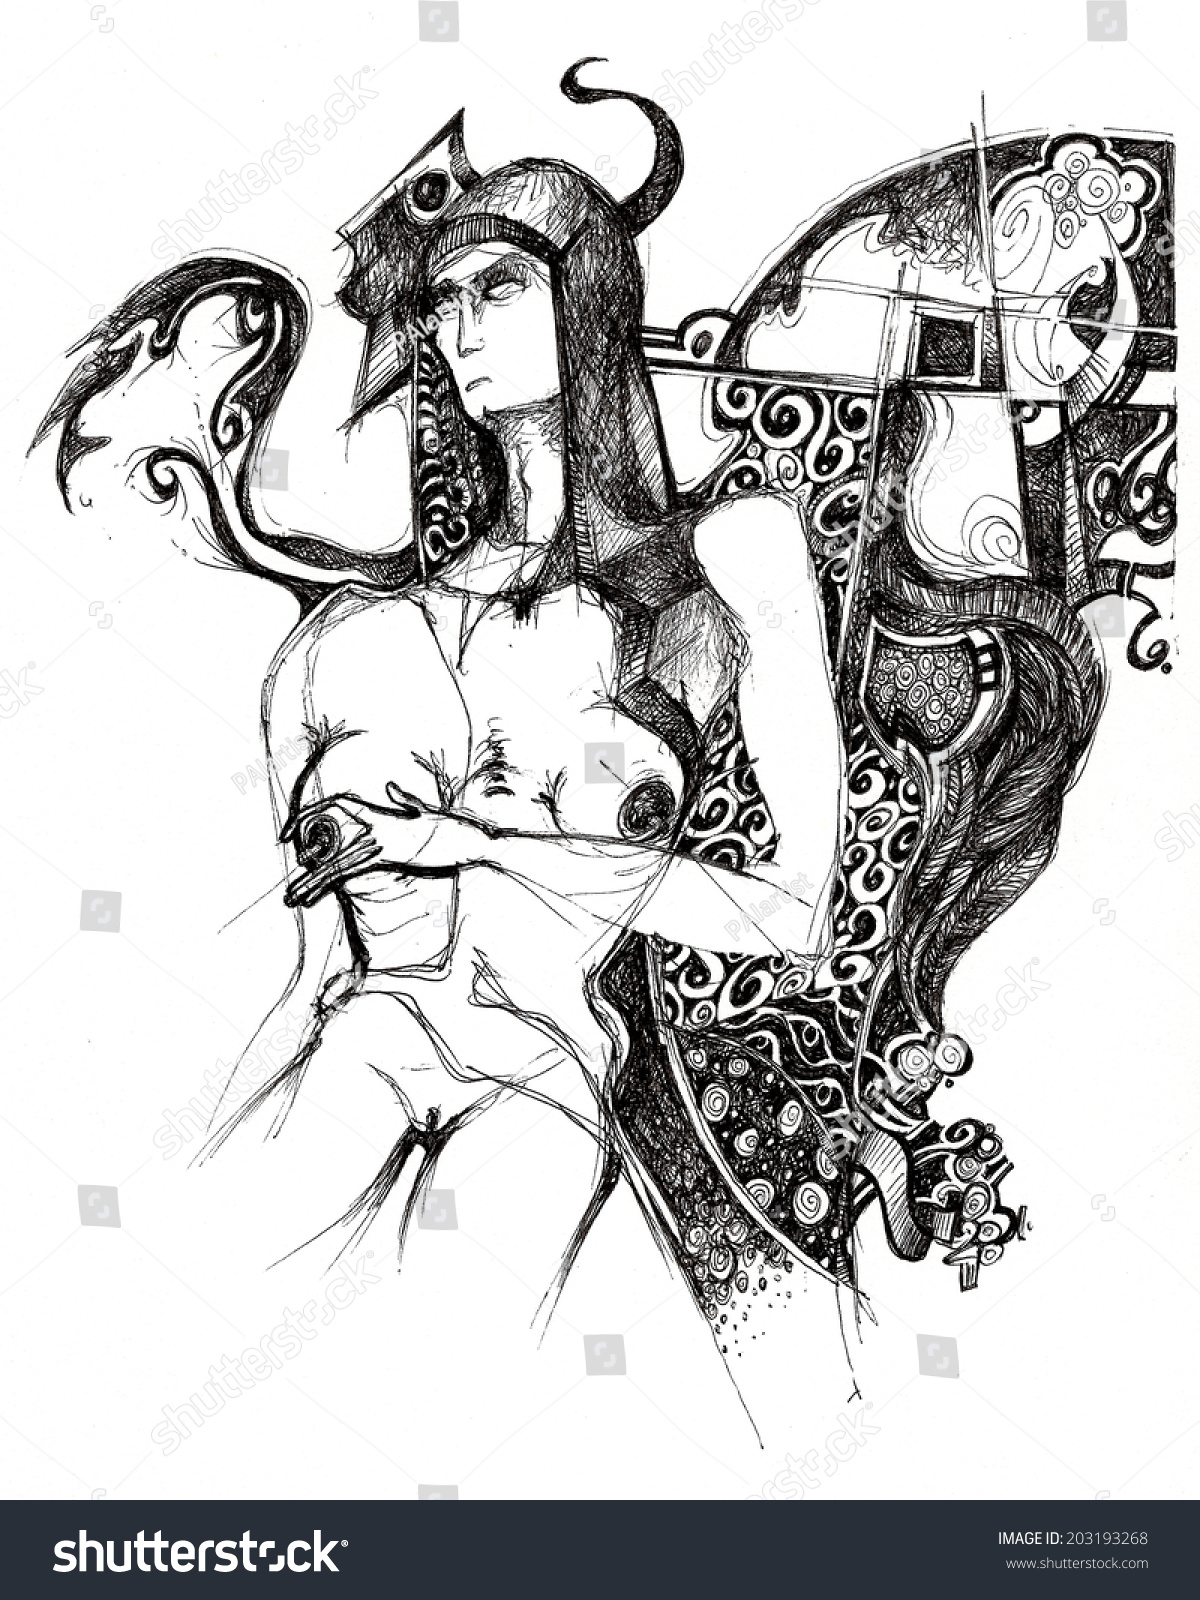 Naked woman angel and demon symbolic dark angel scan of drawing